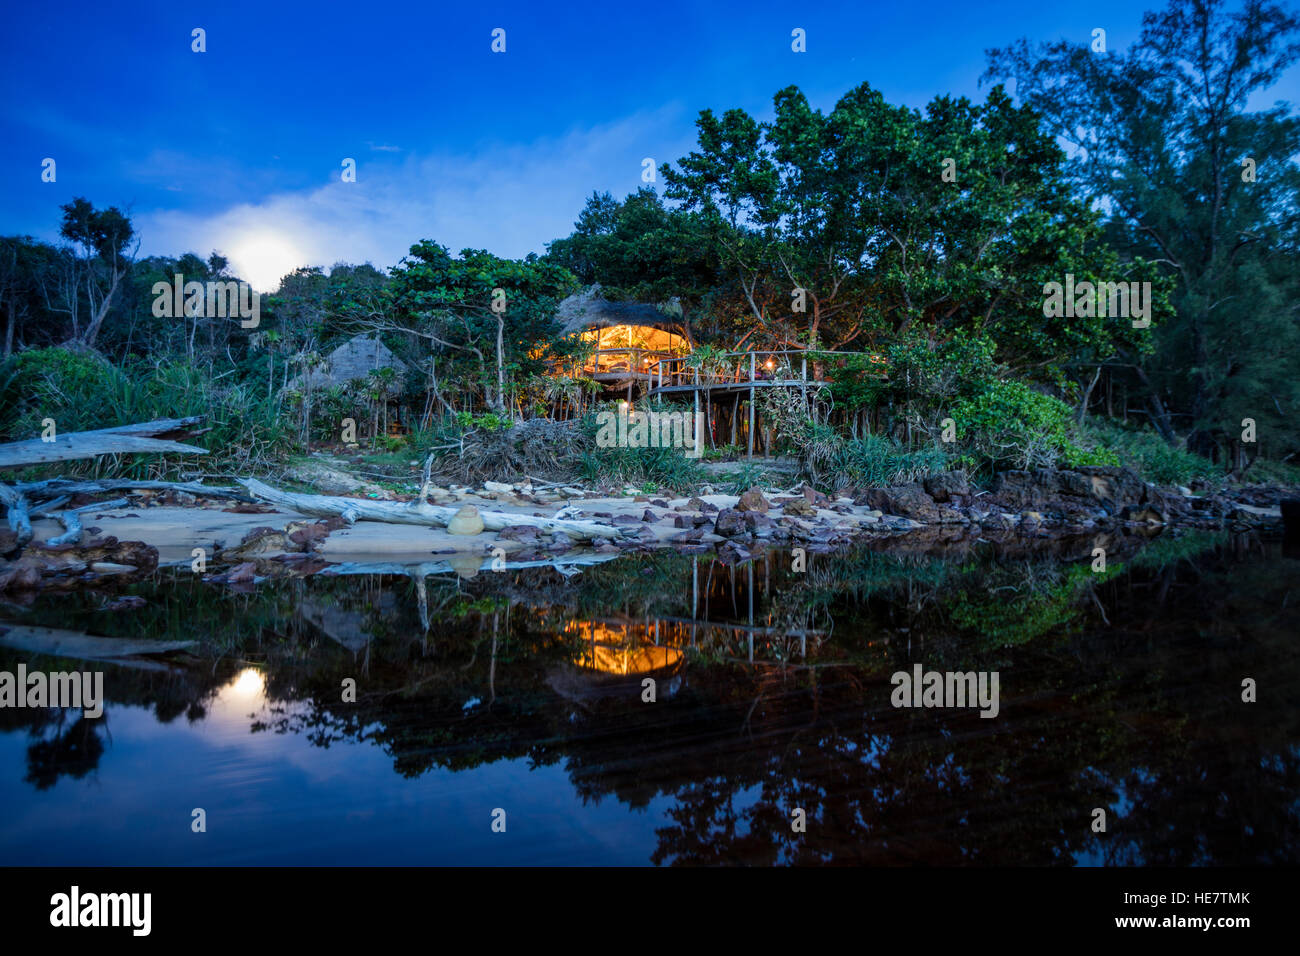 View of the Kaktus resort, Koh Ta Kiev, Sihanoukville, Cambodia - Stock Image